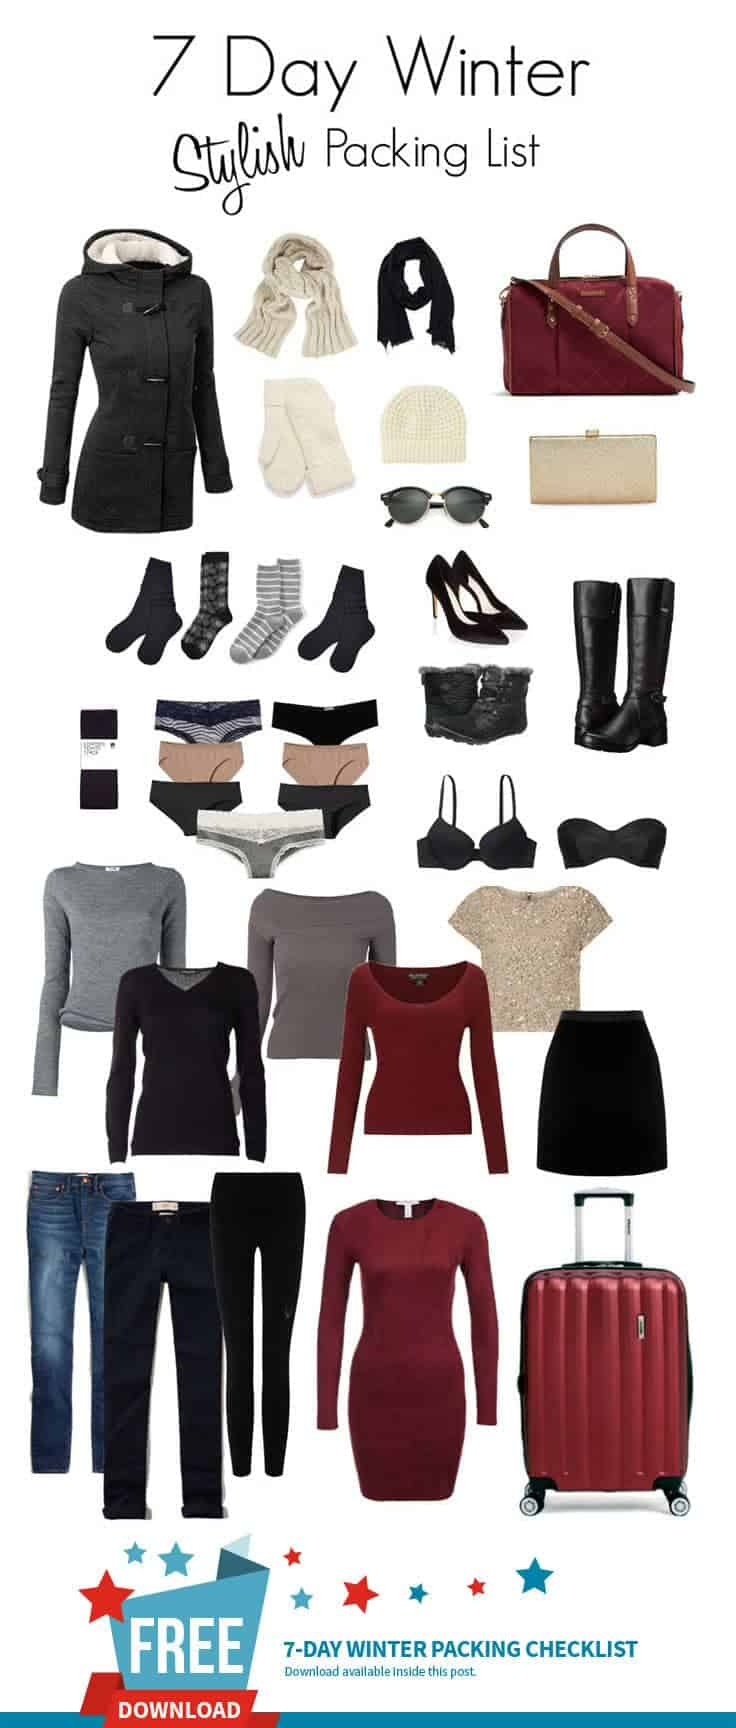 Packing for the winter does not have to be difficult. Pack clothes with two things in mind mix and matching and layering. Complimentary colours and items that can be dressed up or down will make packing for winter vacations in the city a breeze.